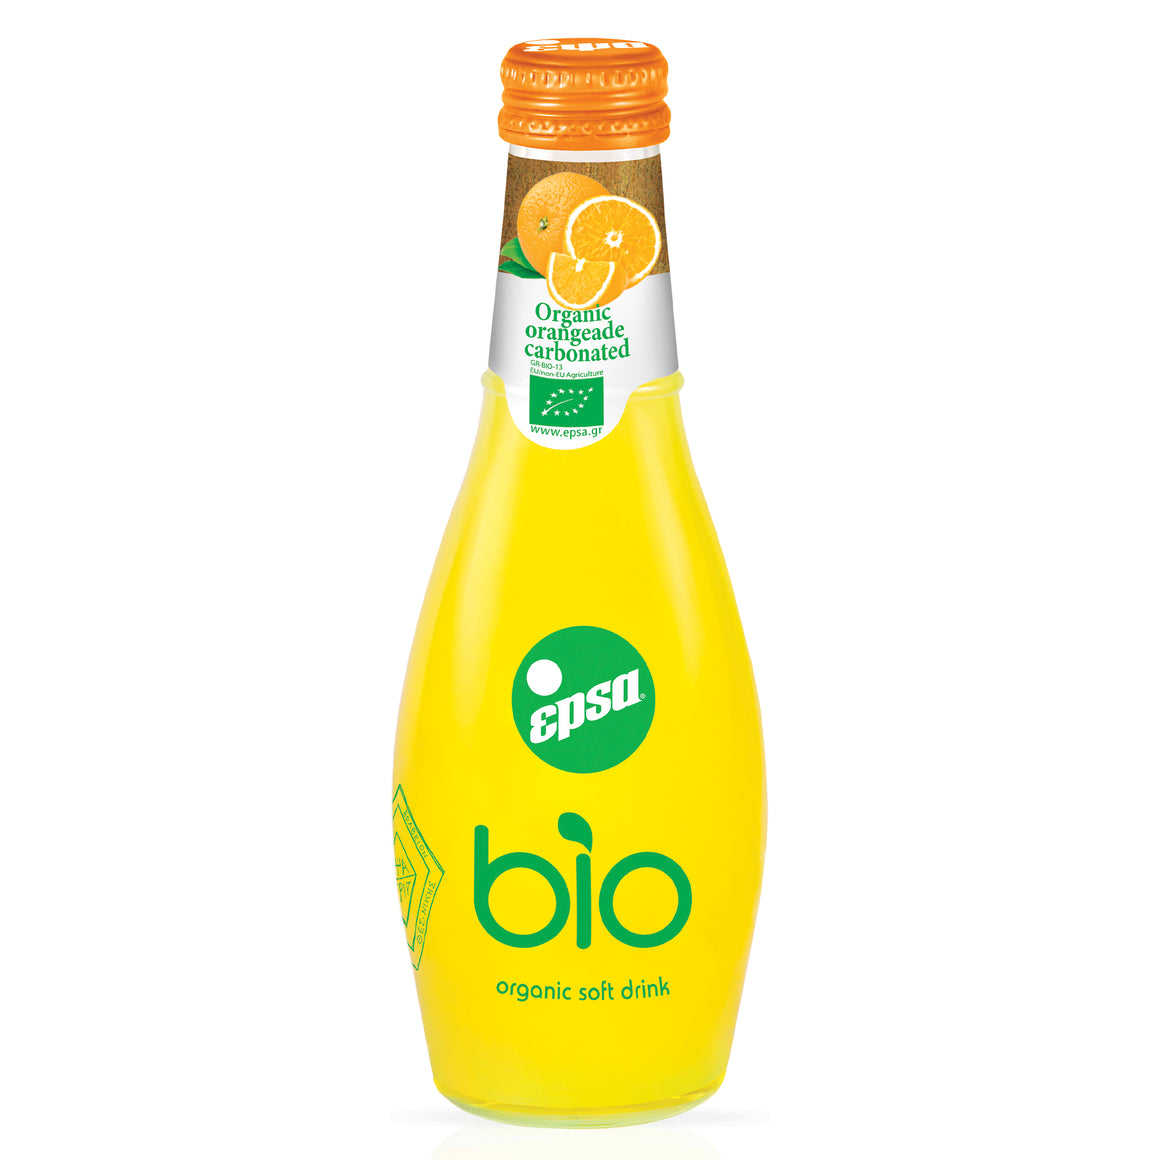 EPSA BIO Carbonated Orangeade, 232ml per bottle